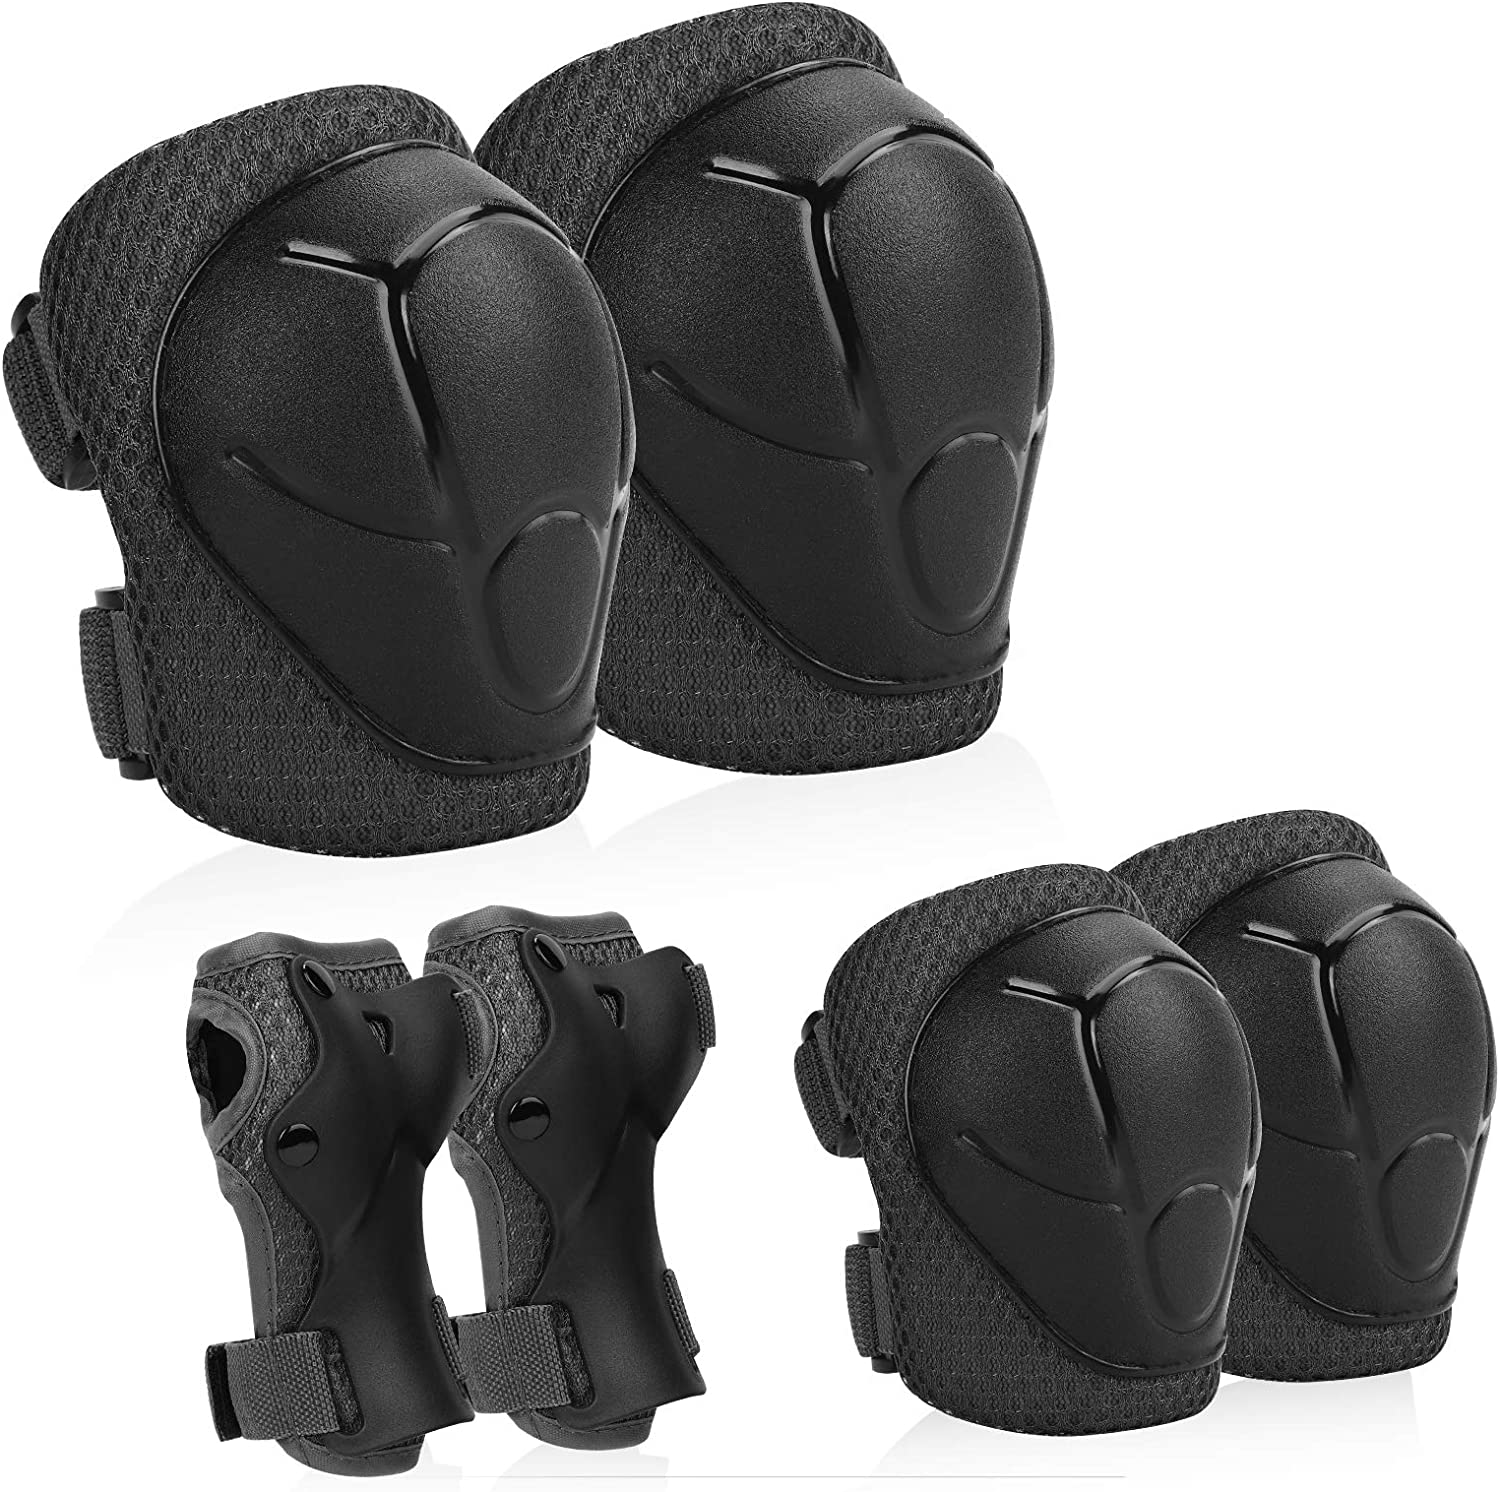 FESSKY Kids Protective Gear Set Adjustable Strap 6pcs Knee Pads and Elbow Pads with Wrist Guard for Skating Cycling Bike Rollerblading Scooter